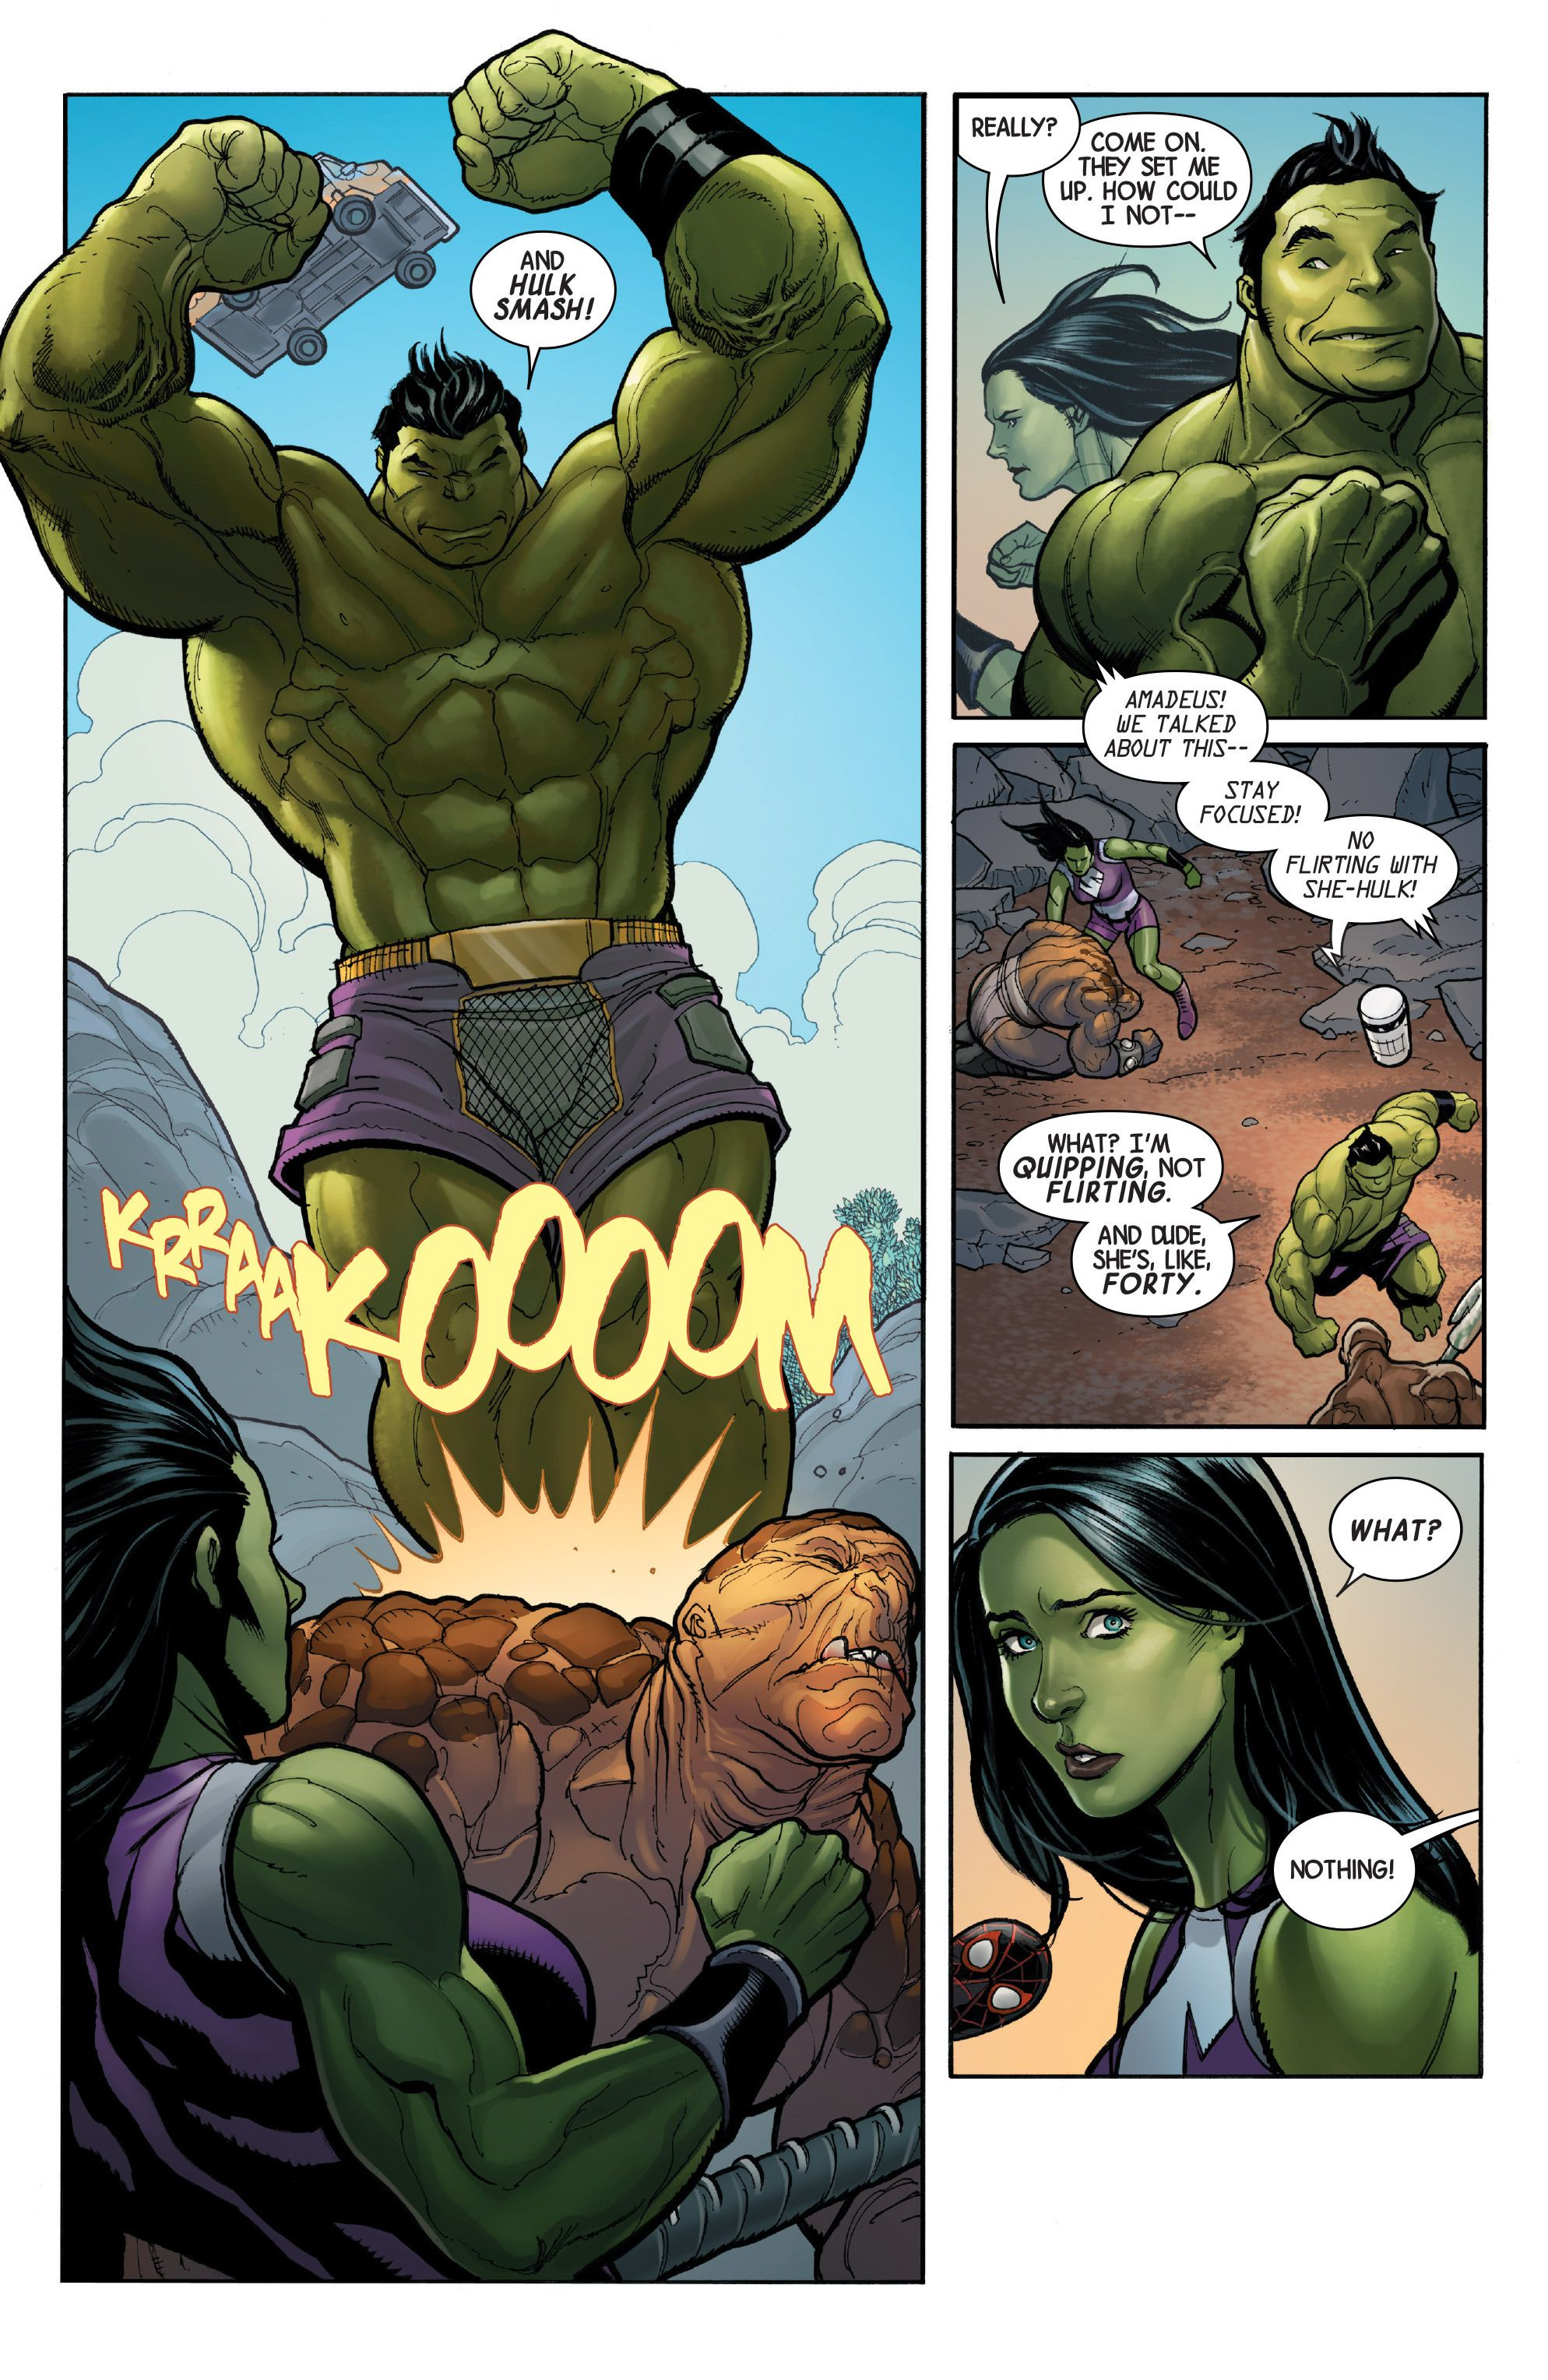 The totally awesome hulk 2016 1 page 26 she hulk red she hulk the totally awesome hulk 2016 1 page 26 publicscrutiny Images